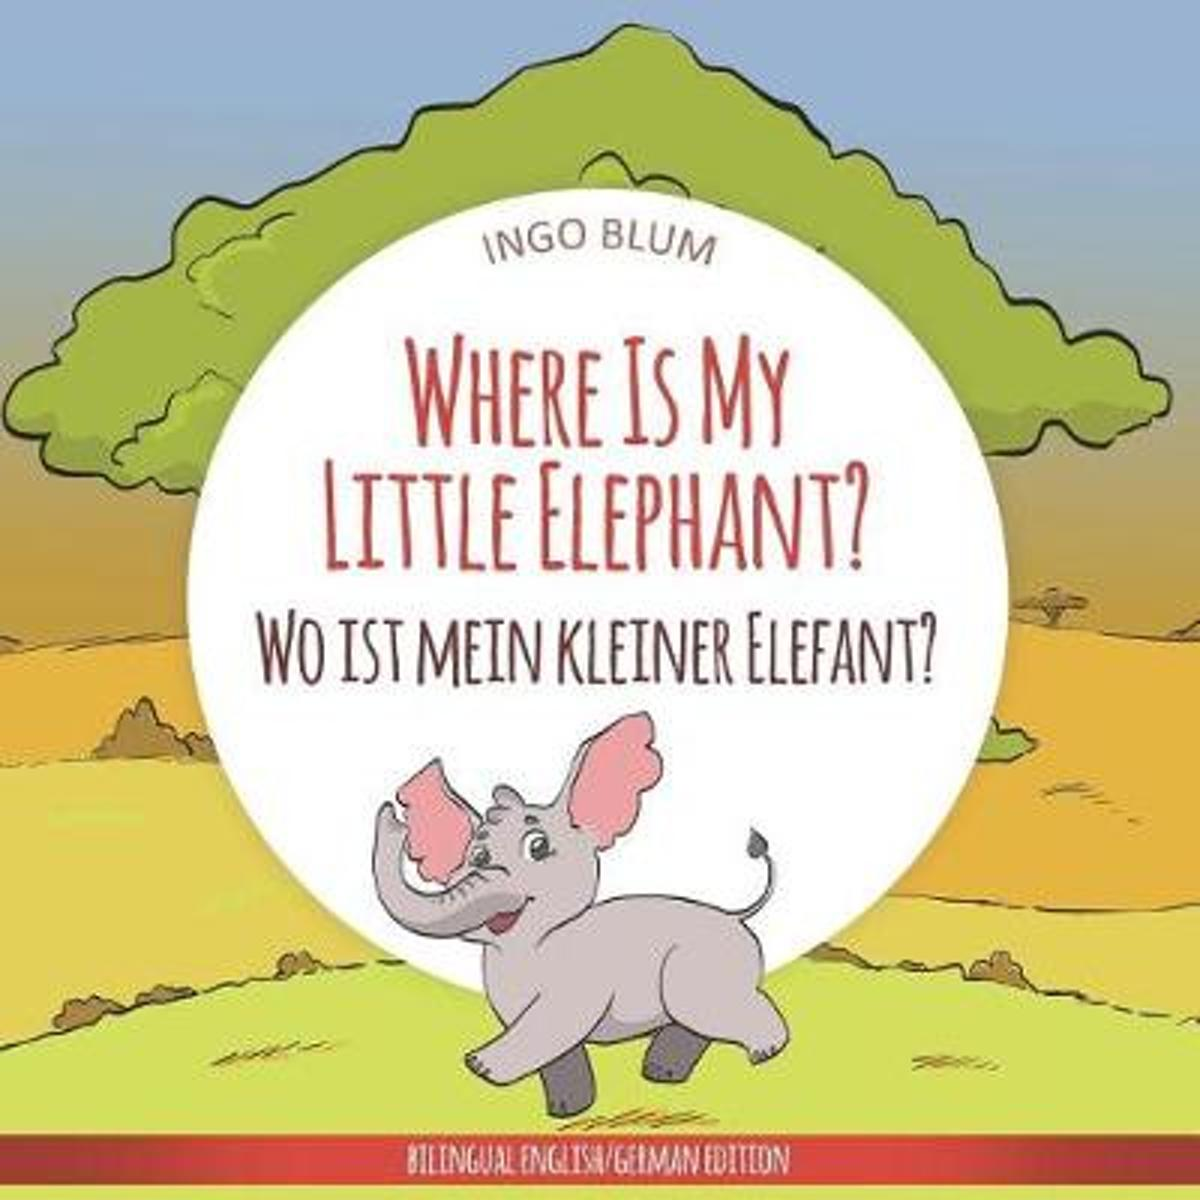 Where Is My Little Elephant? - Wo Ist Mein Kleiner Elefant?